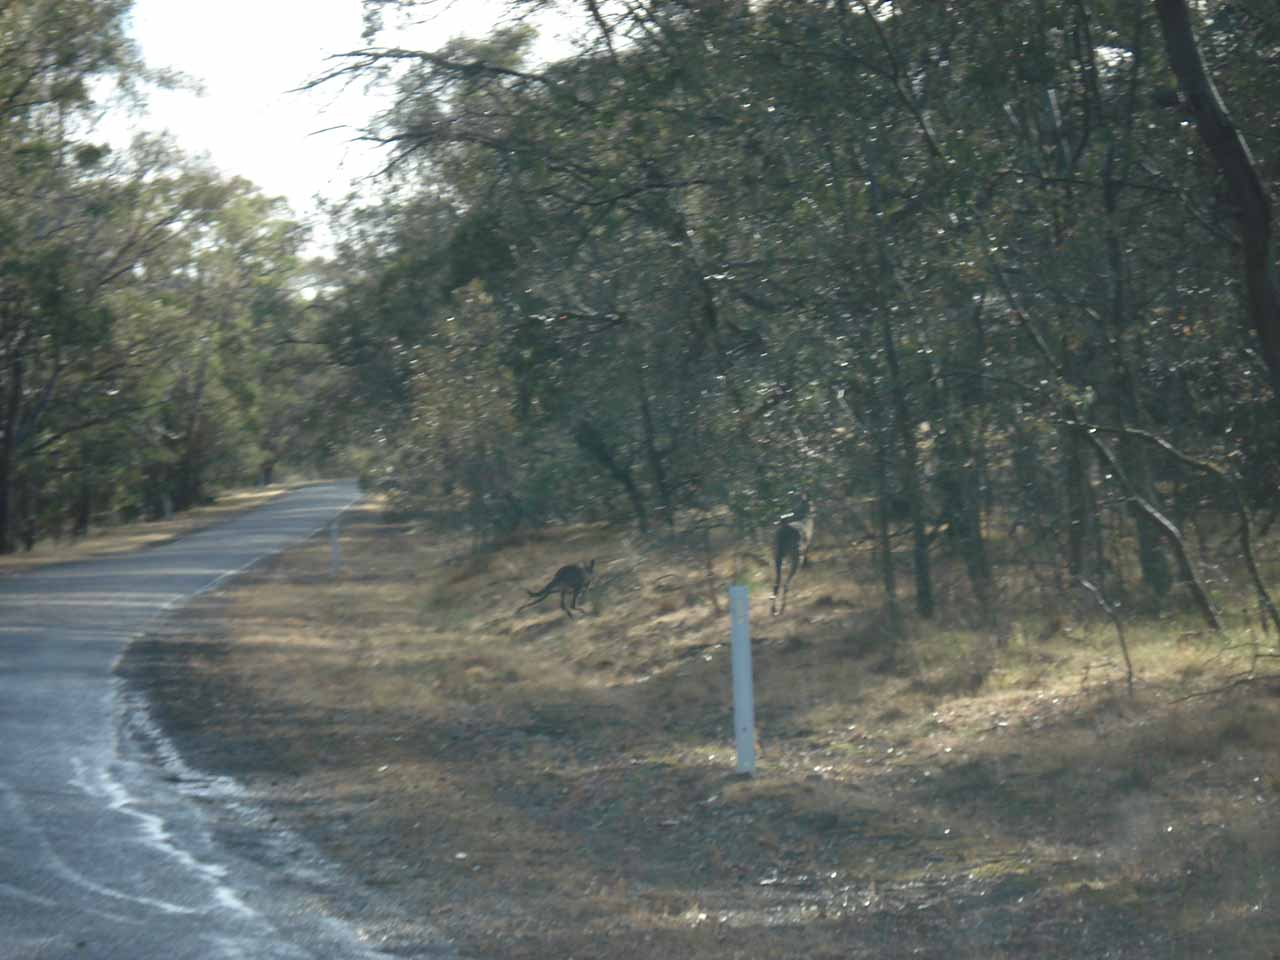 A couple more kangaroos leaving the road as we were driving by